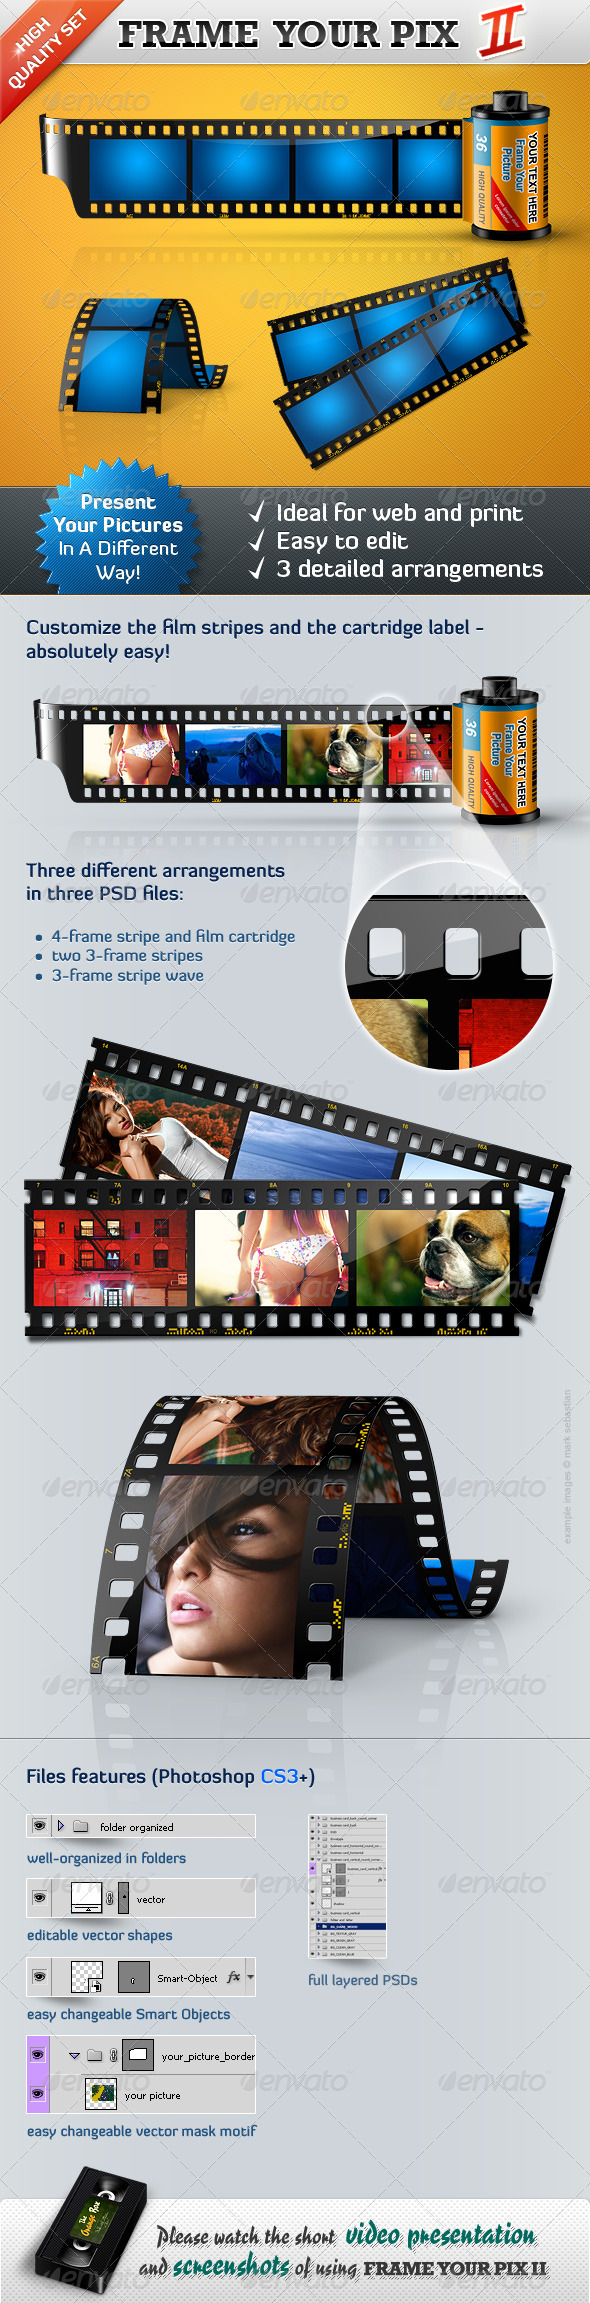 Frame Your Pictures II - Film Stripes - GraphicRiver Item for Sale